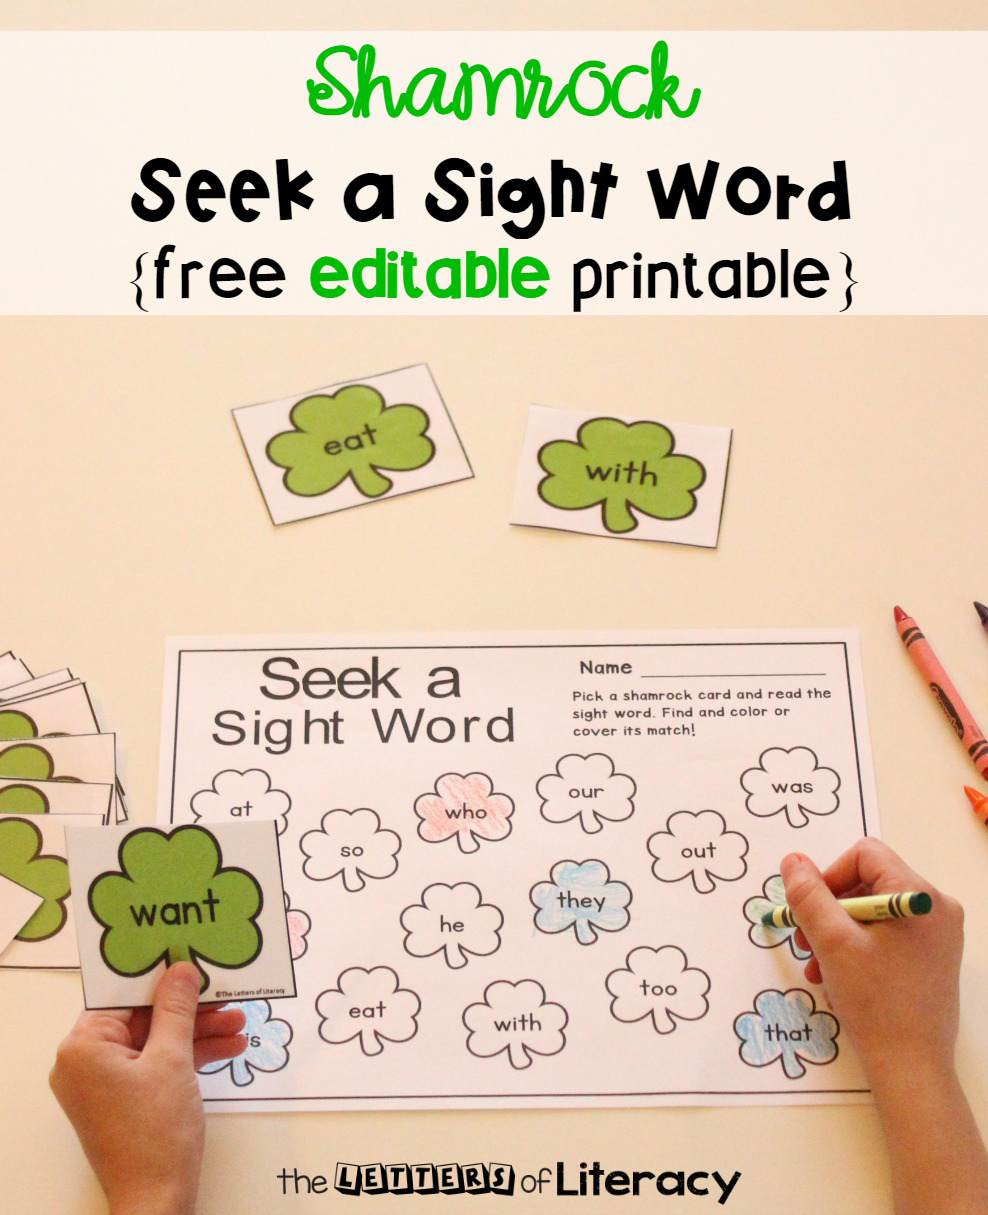 Bring some fun to your literacy centers this month with this Editable St. Patrick's Day Sight Word Game! Choose the words you want your students to work on with this fun game that is perfect for Kindergarten and 1st grade literacy centers this March!